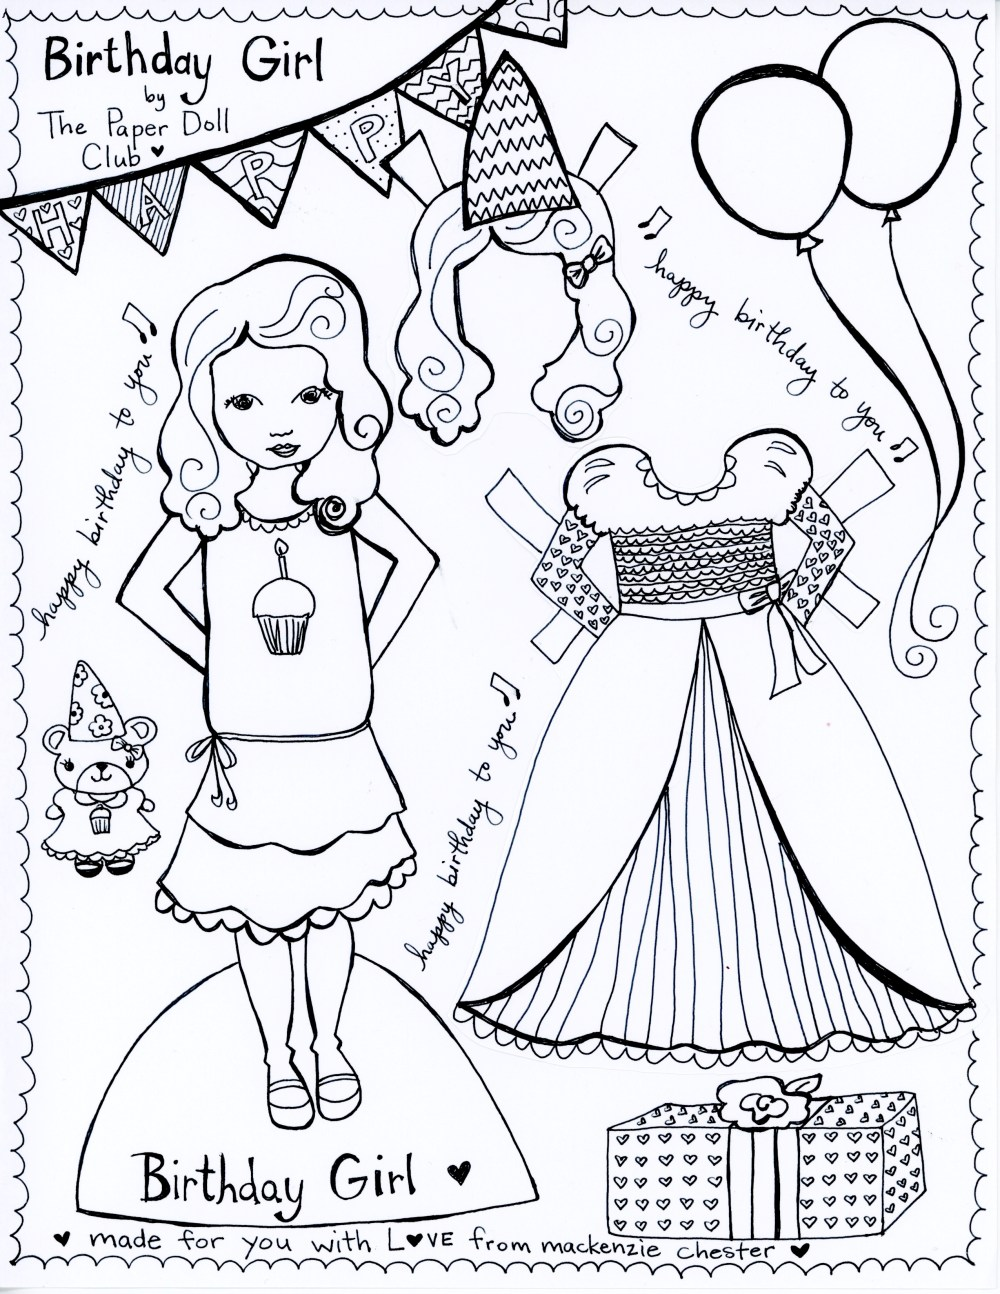 Birthday Girl Free Printable Paper Doll